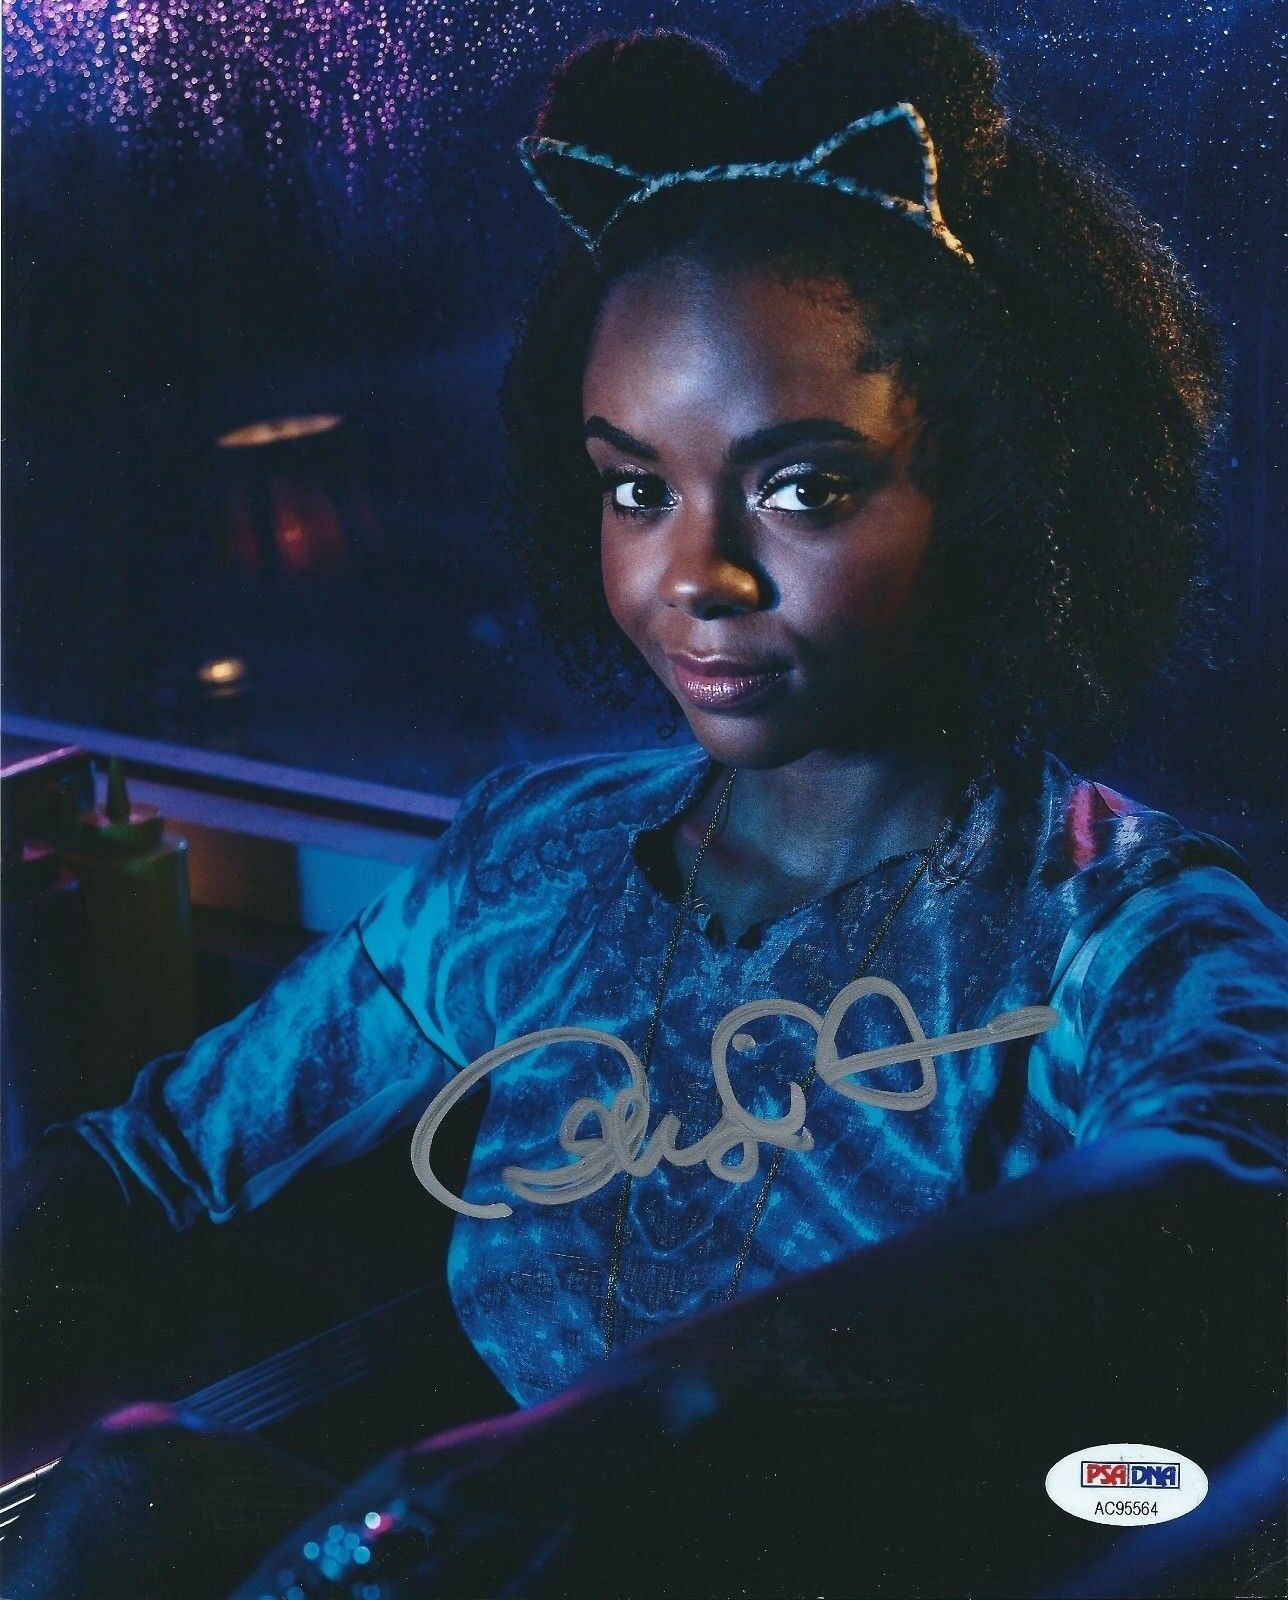 Ashleigh Murray Signed Riverdale 8x10 Photo *Actress *Josie McCoy PSA AC95564